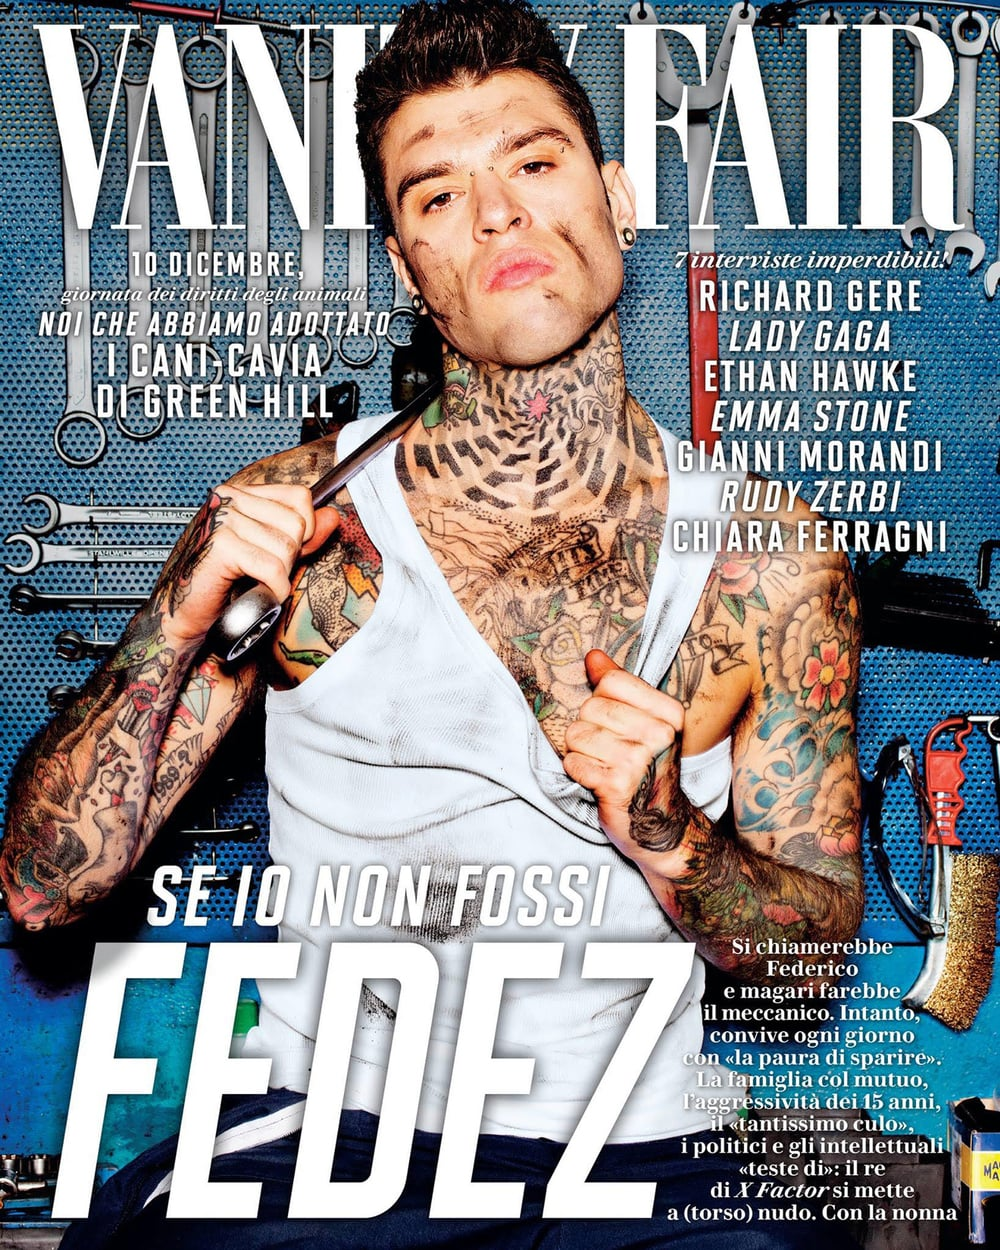 Fedez-cover-temp.jpg